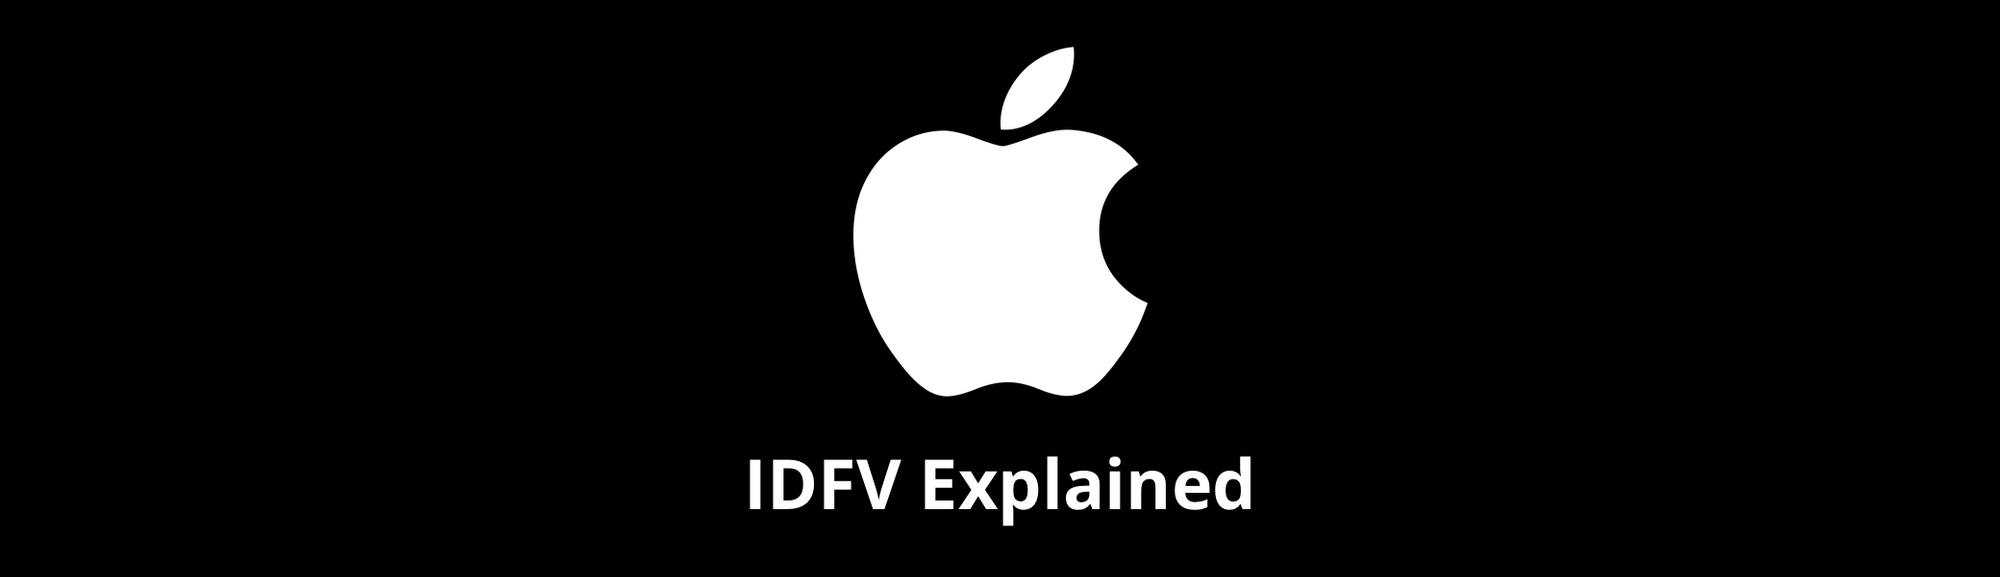 IDFV - Apple's ID for Vendors Explained